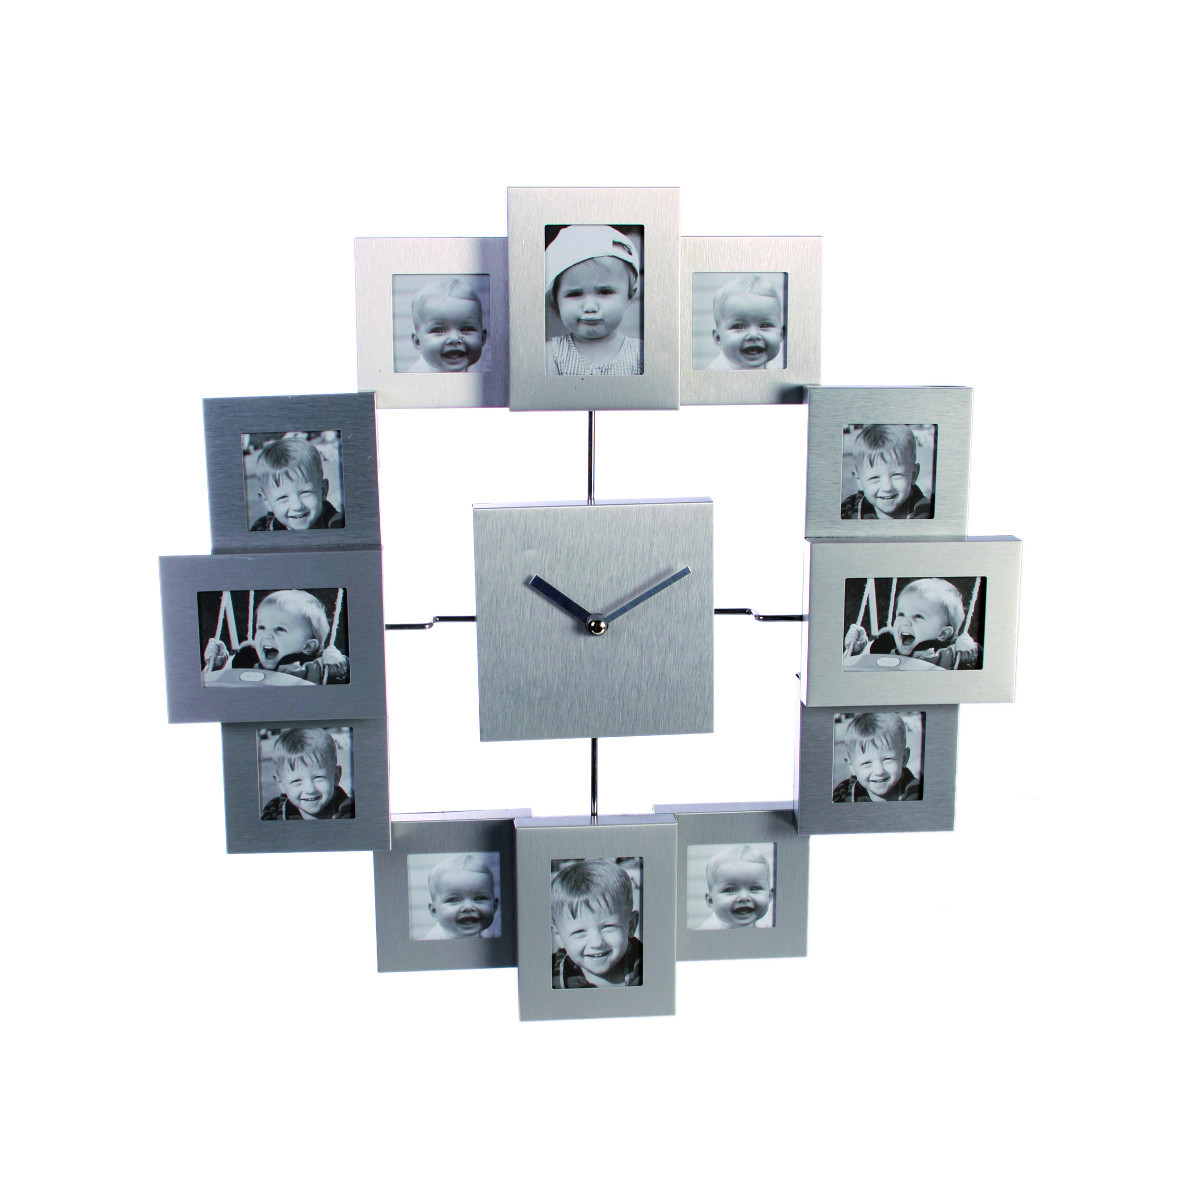 Metal wall clock w/ 12 picture frames